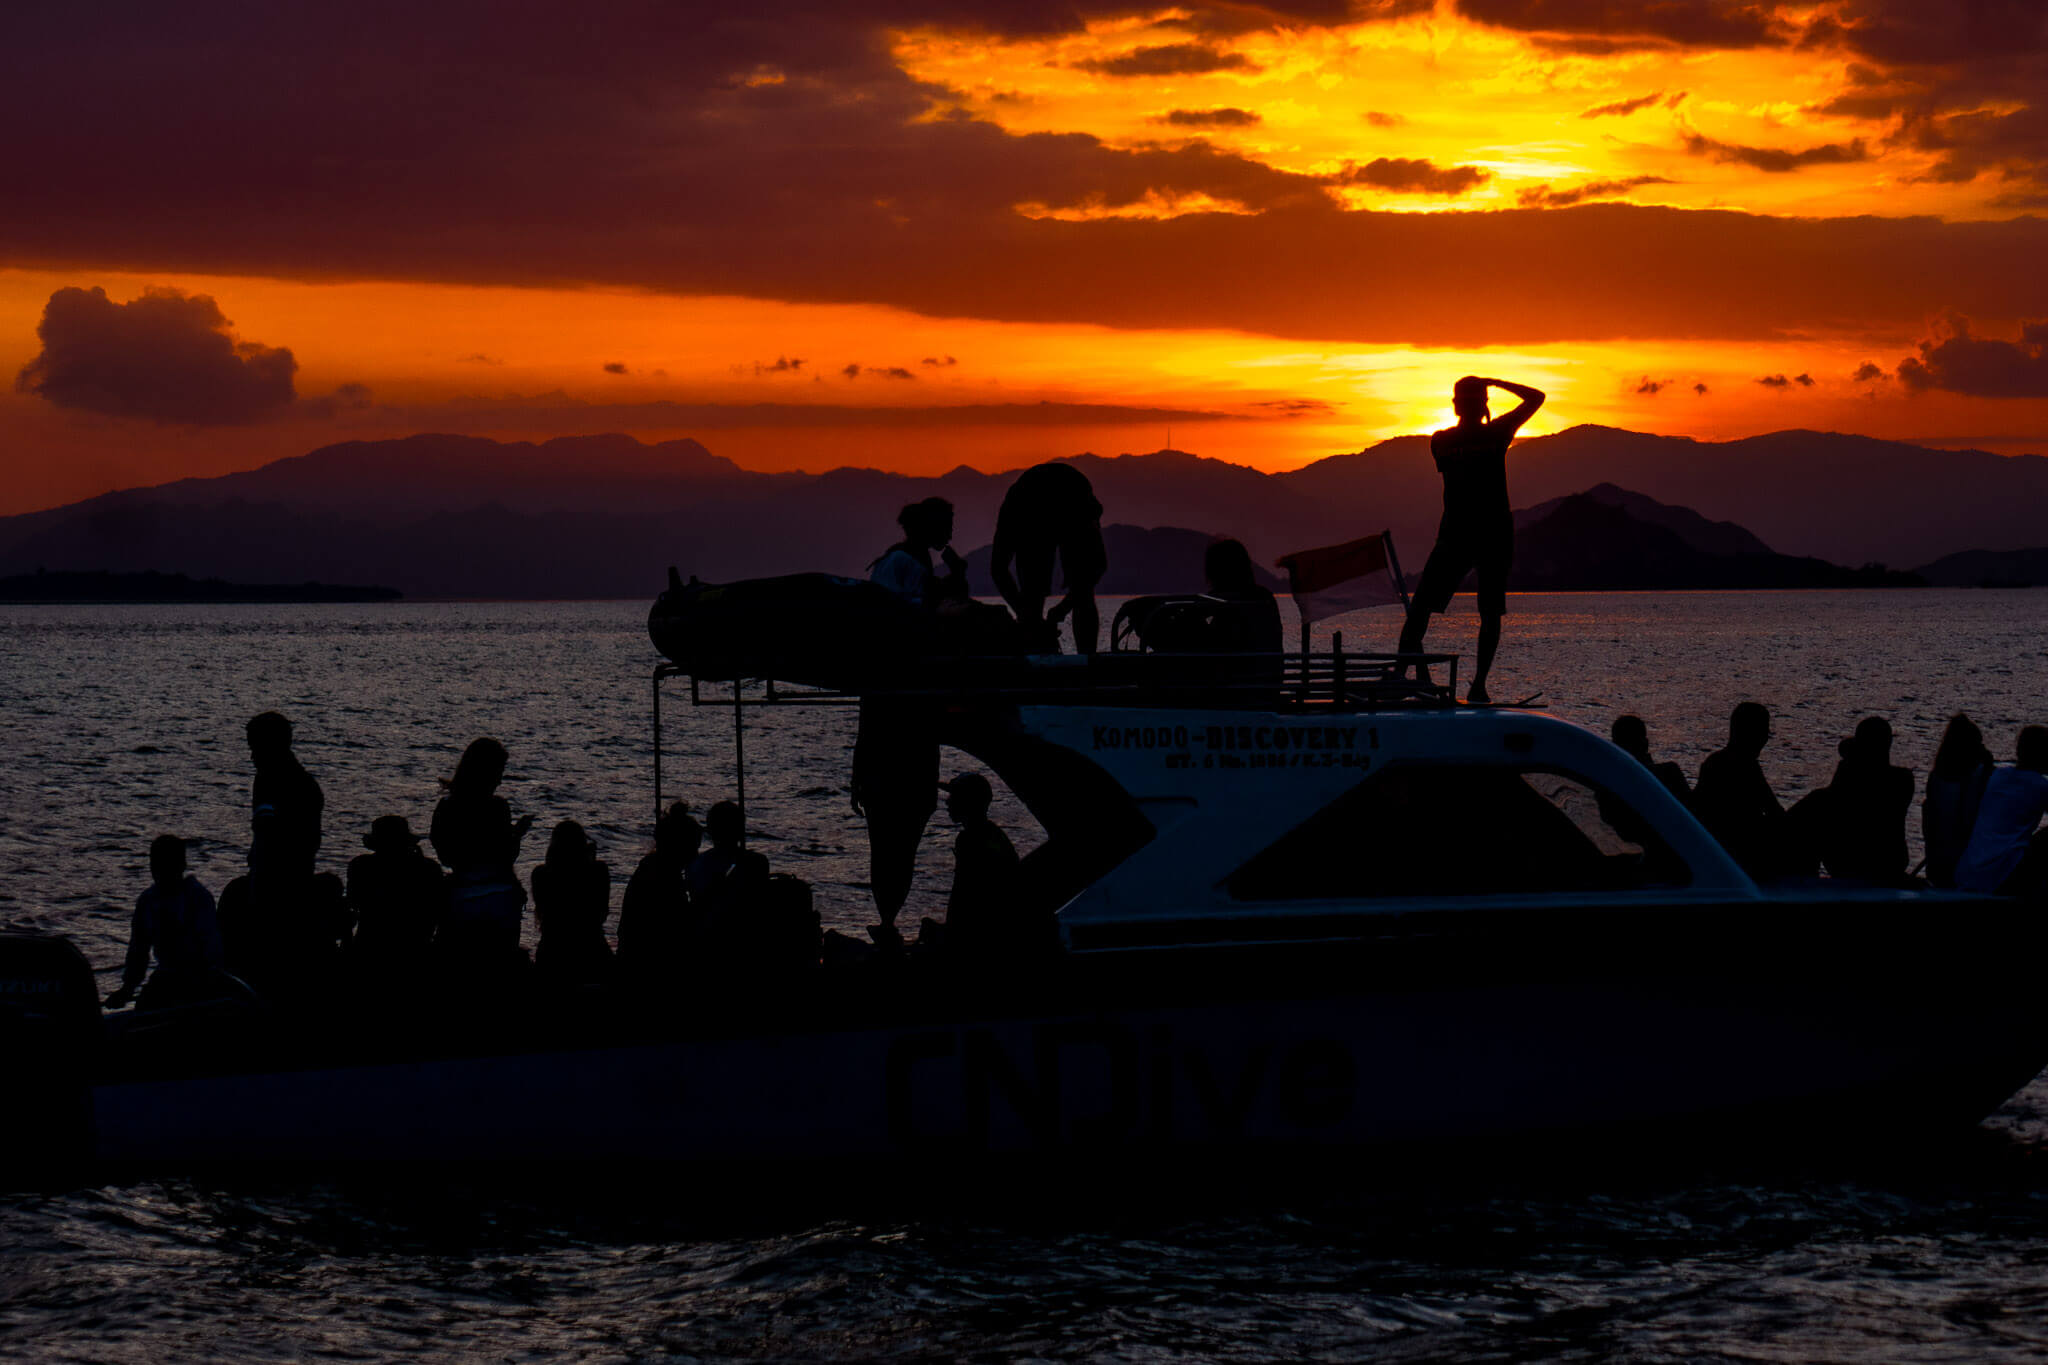 Sunset at Komodo Island after a day of adventure. Komodo National Park